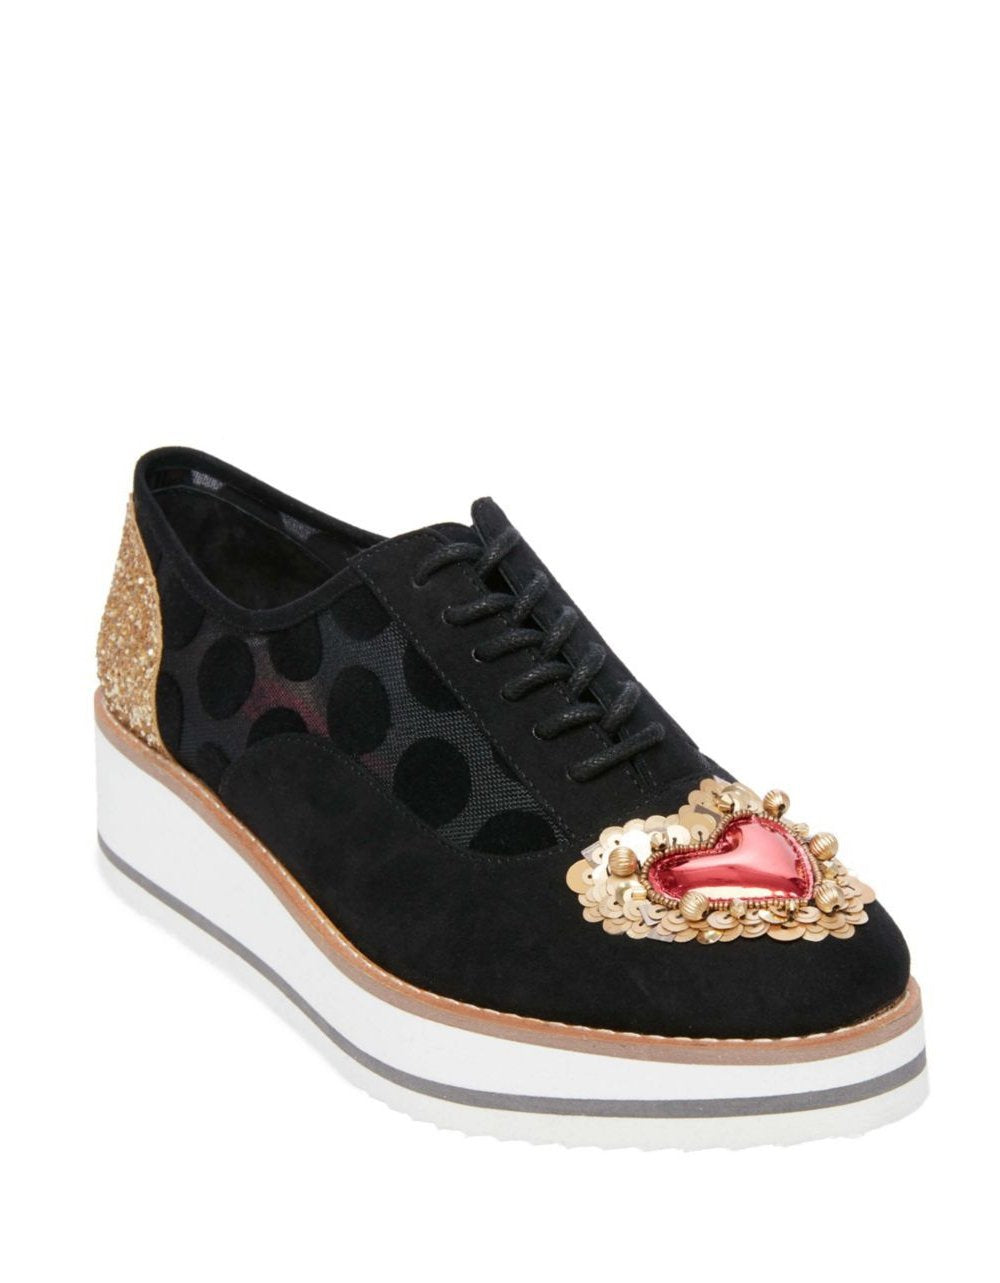 WINNIE BLACK MULTI - SHOES - Betsey Johnson